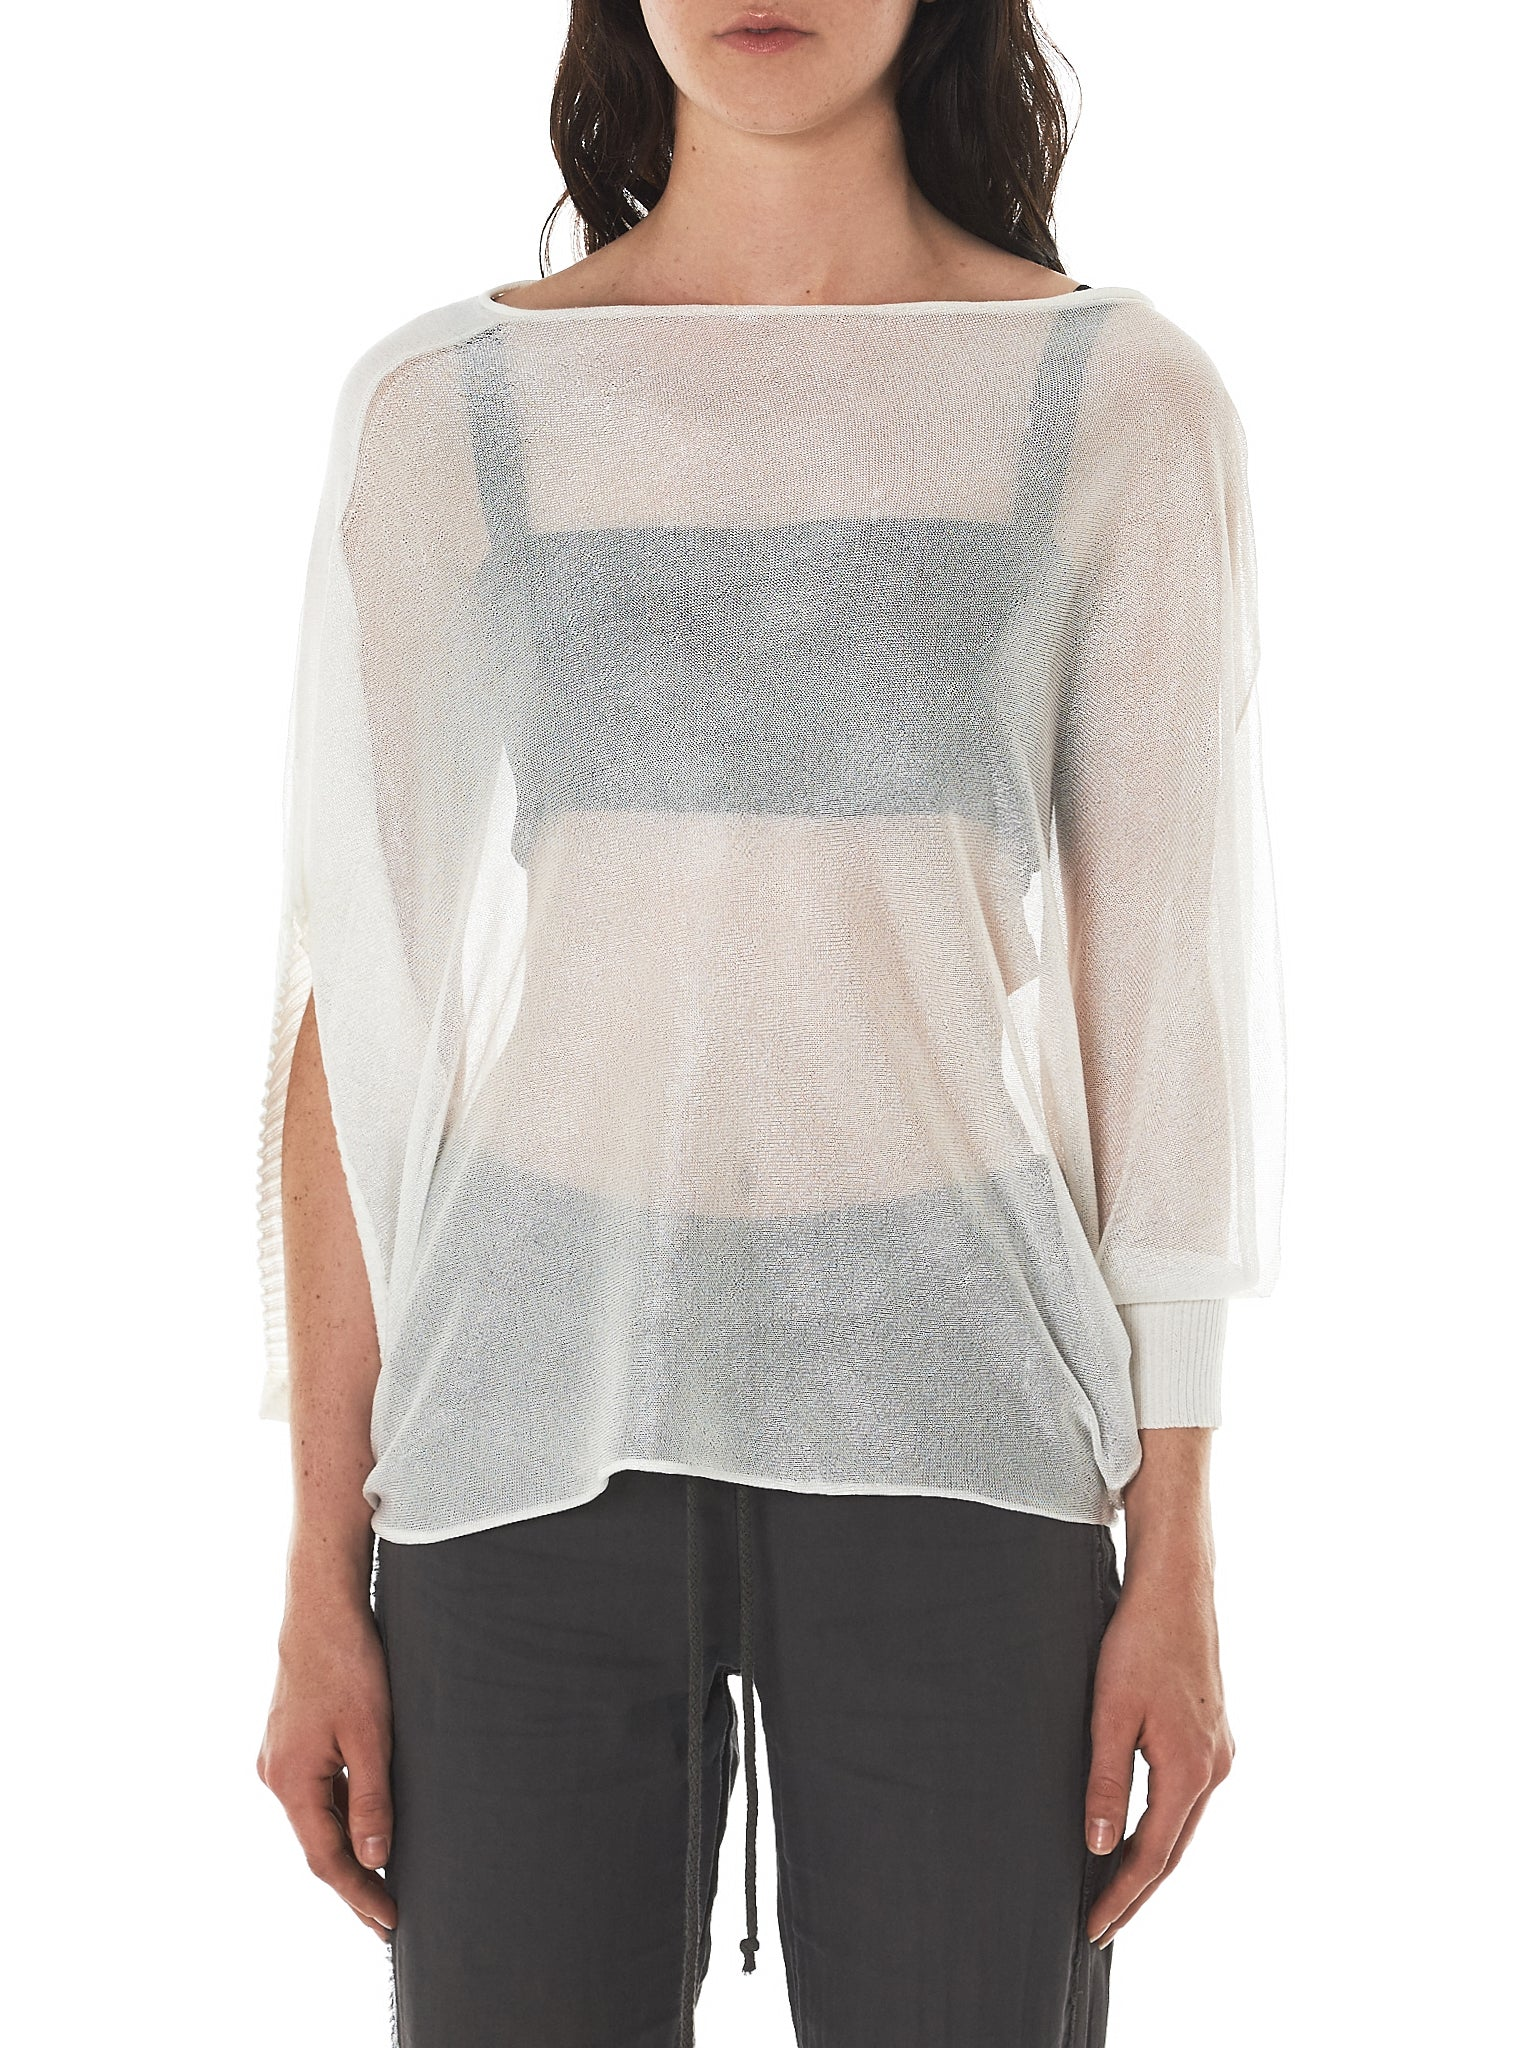 Asymmetric Sleeve Top (W22-750-126-ECRU)